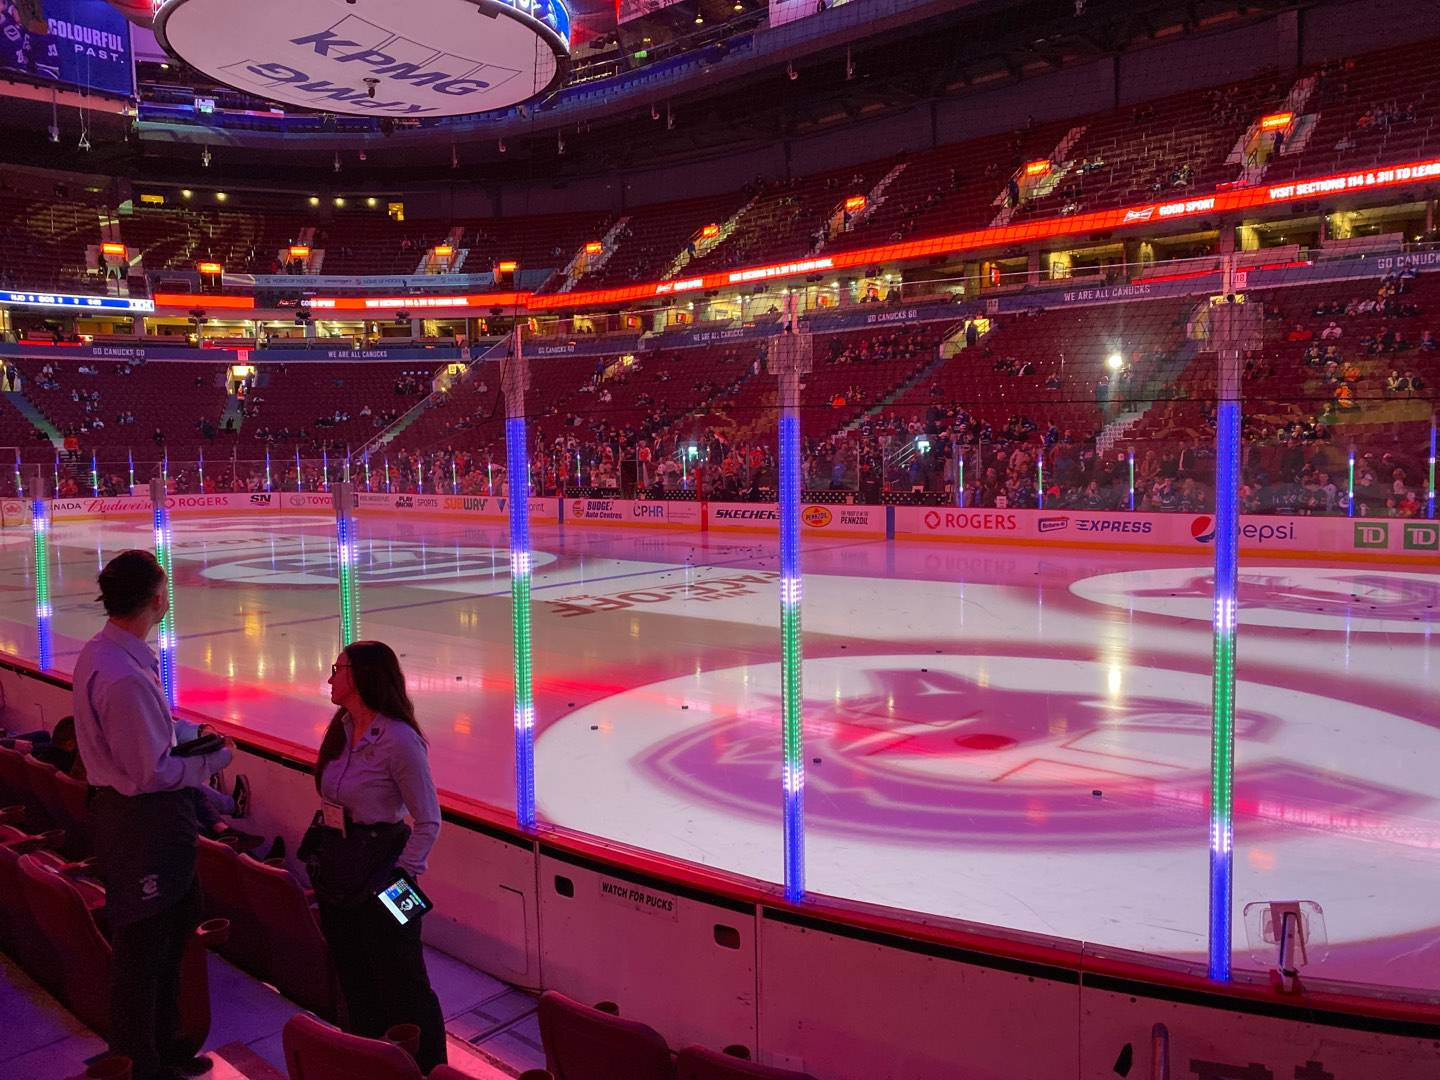 Rogers Arena Section 104 Row 5 Seat 5